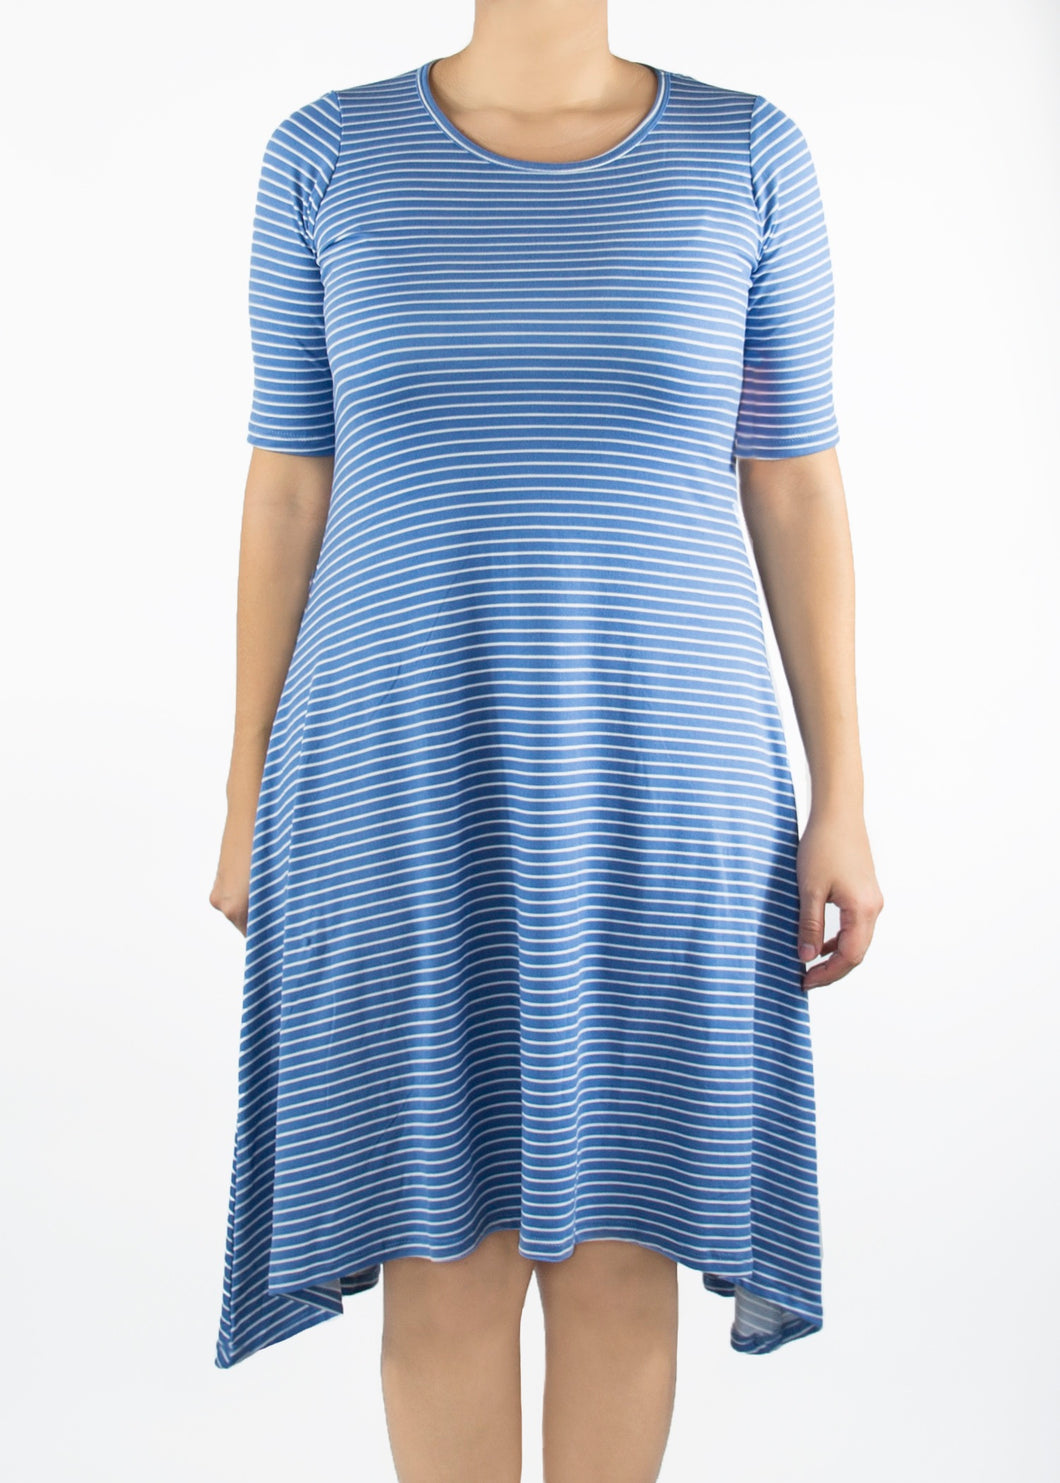 Poppy Dress - Blue and White Stripe - (3X)